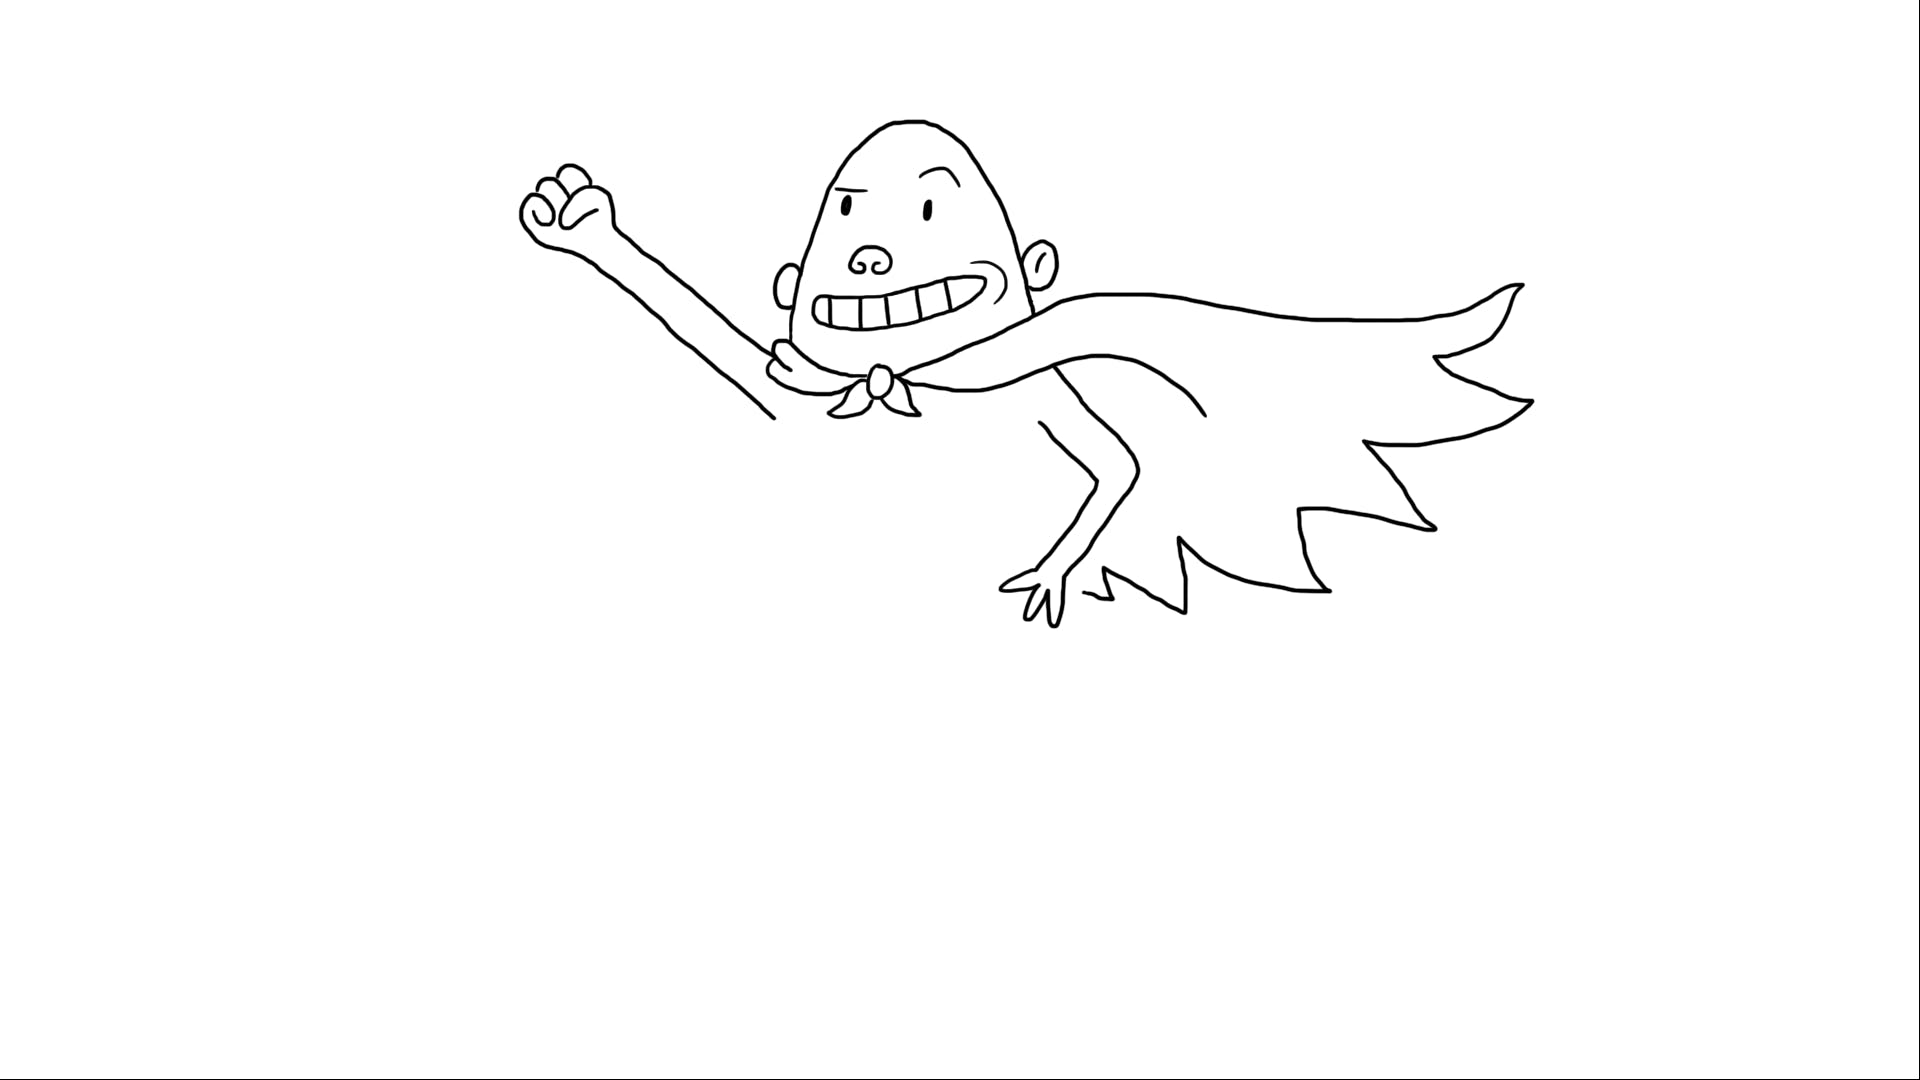 Captain Underpants's head, cape and arms